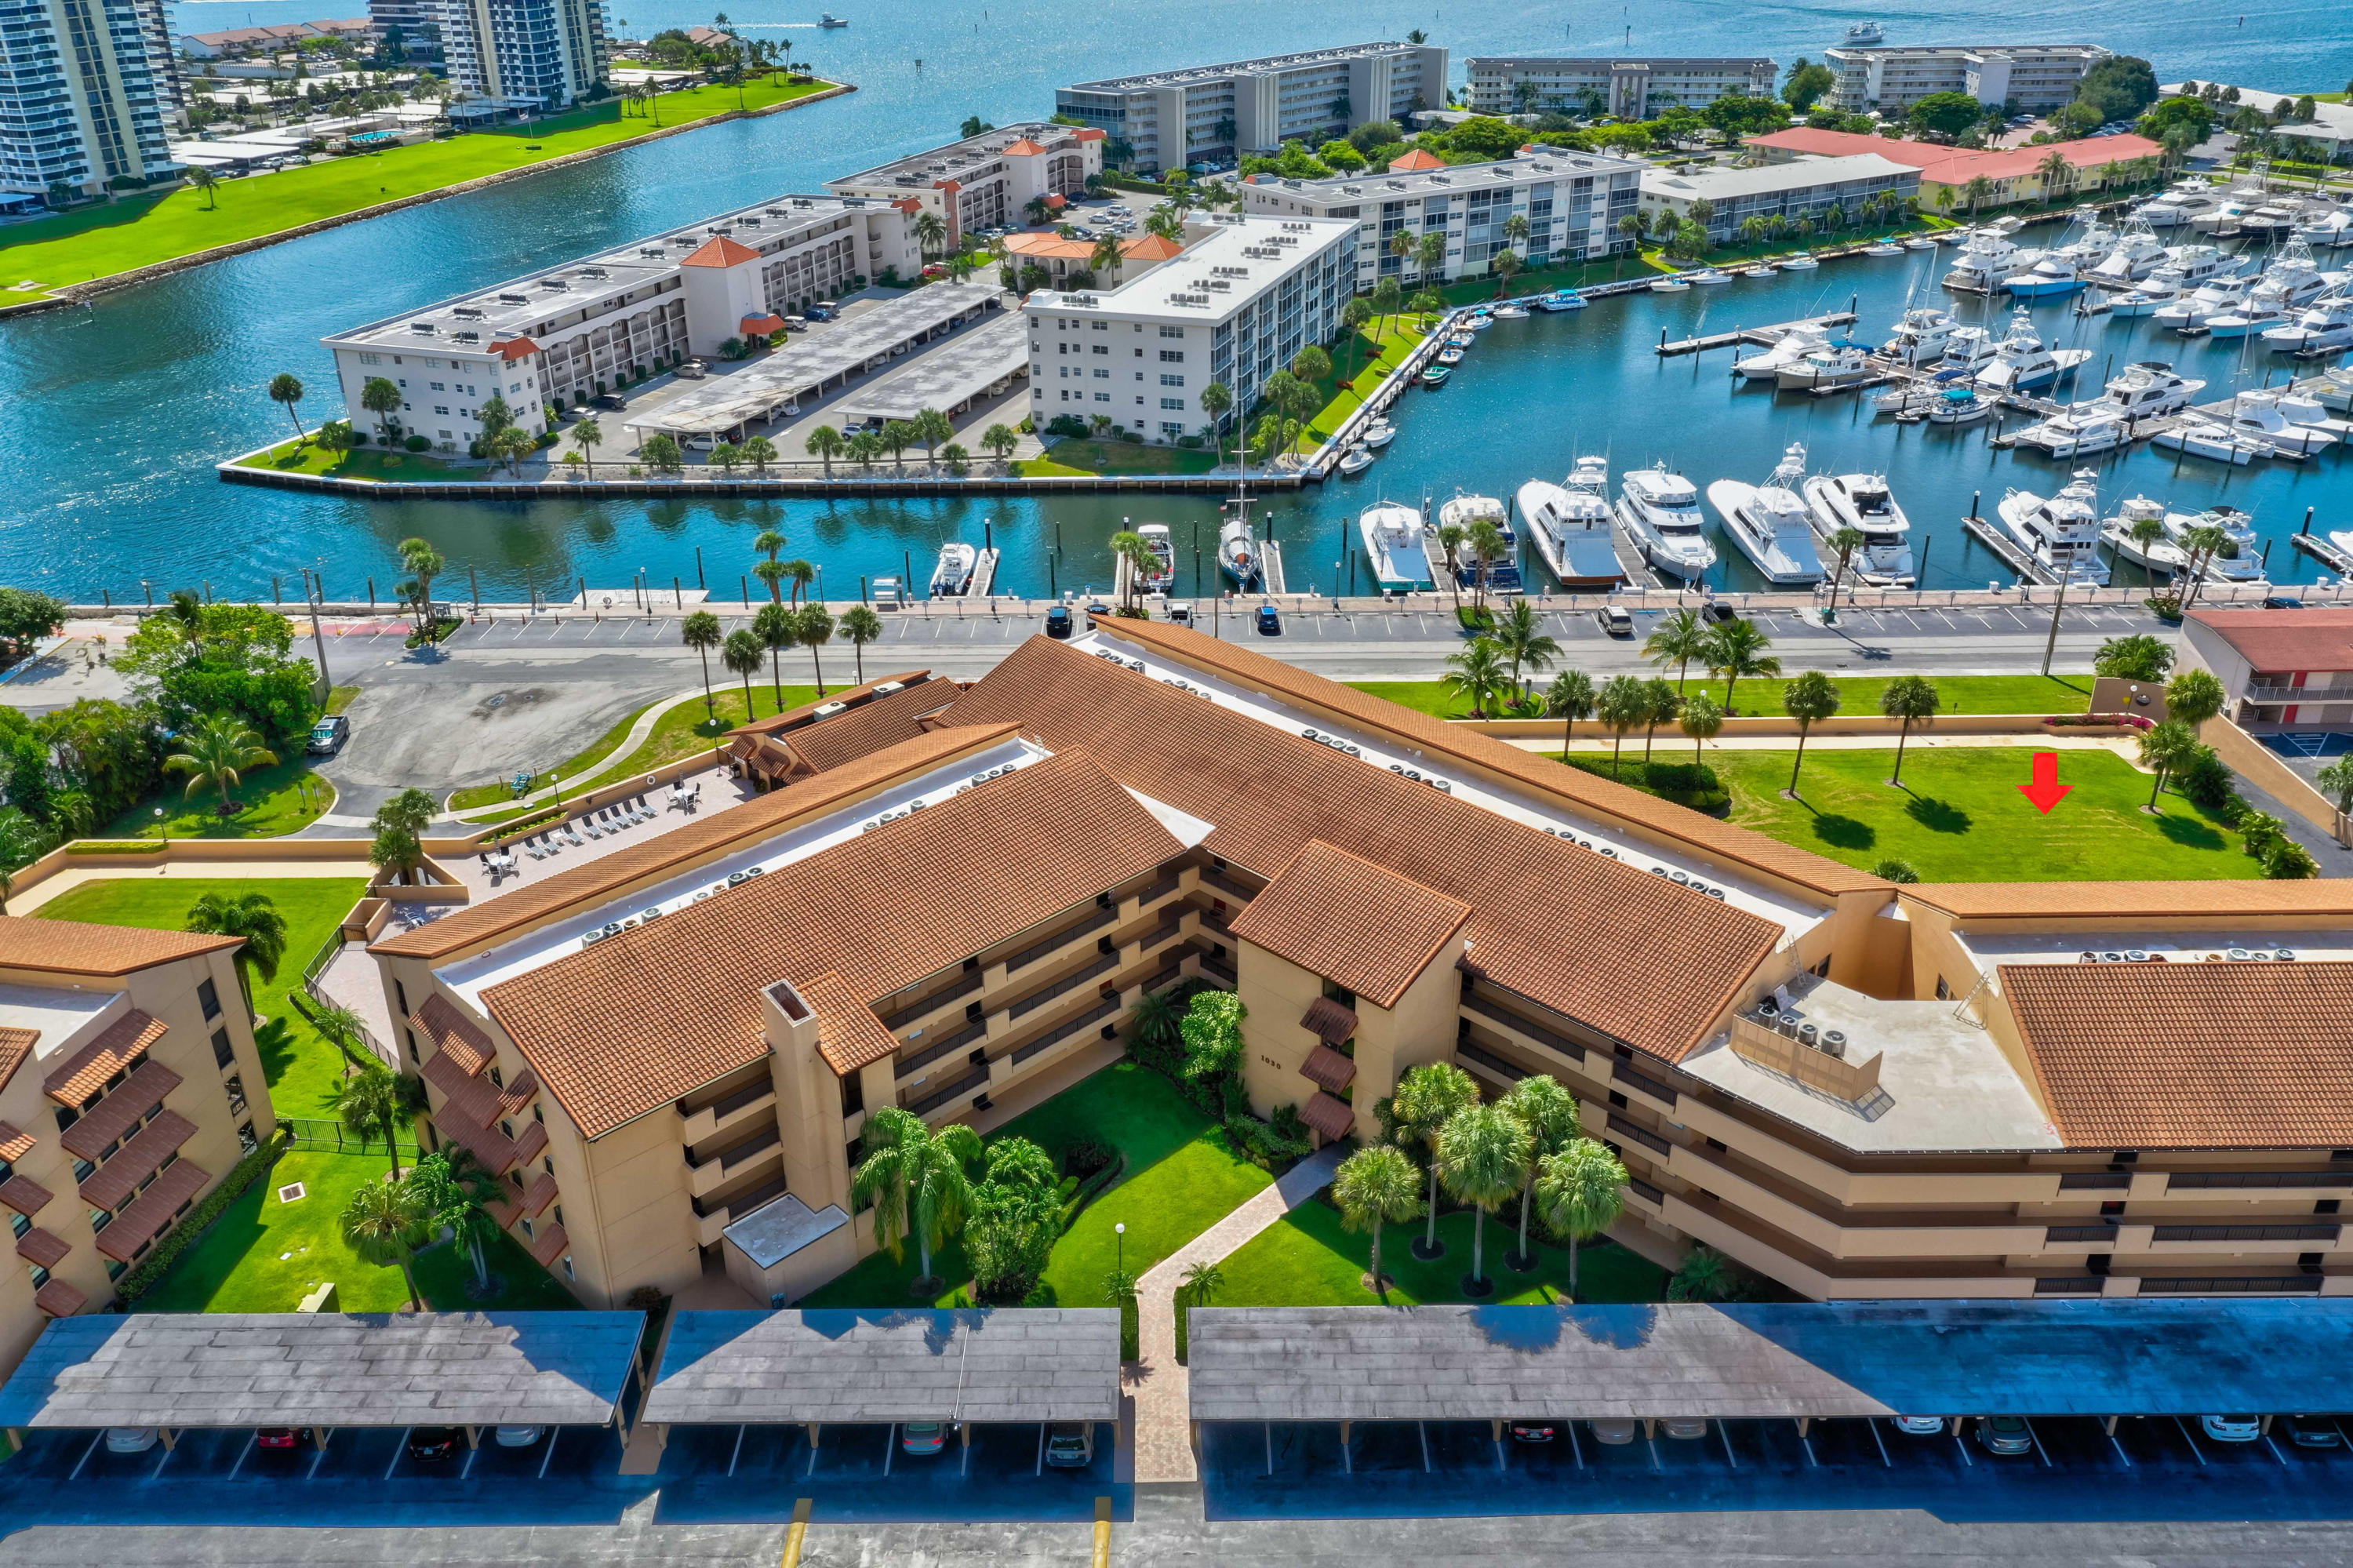 1030 Us Highway 1 202, North Palm Beach, Florida 33408, 2 Bedrooms Bedrooms, ,2 BathroomsBathrooms,A,Condominium,Us Highway 1,RX-10538868